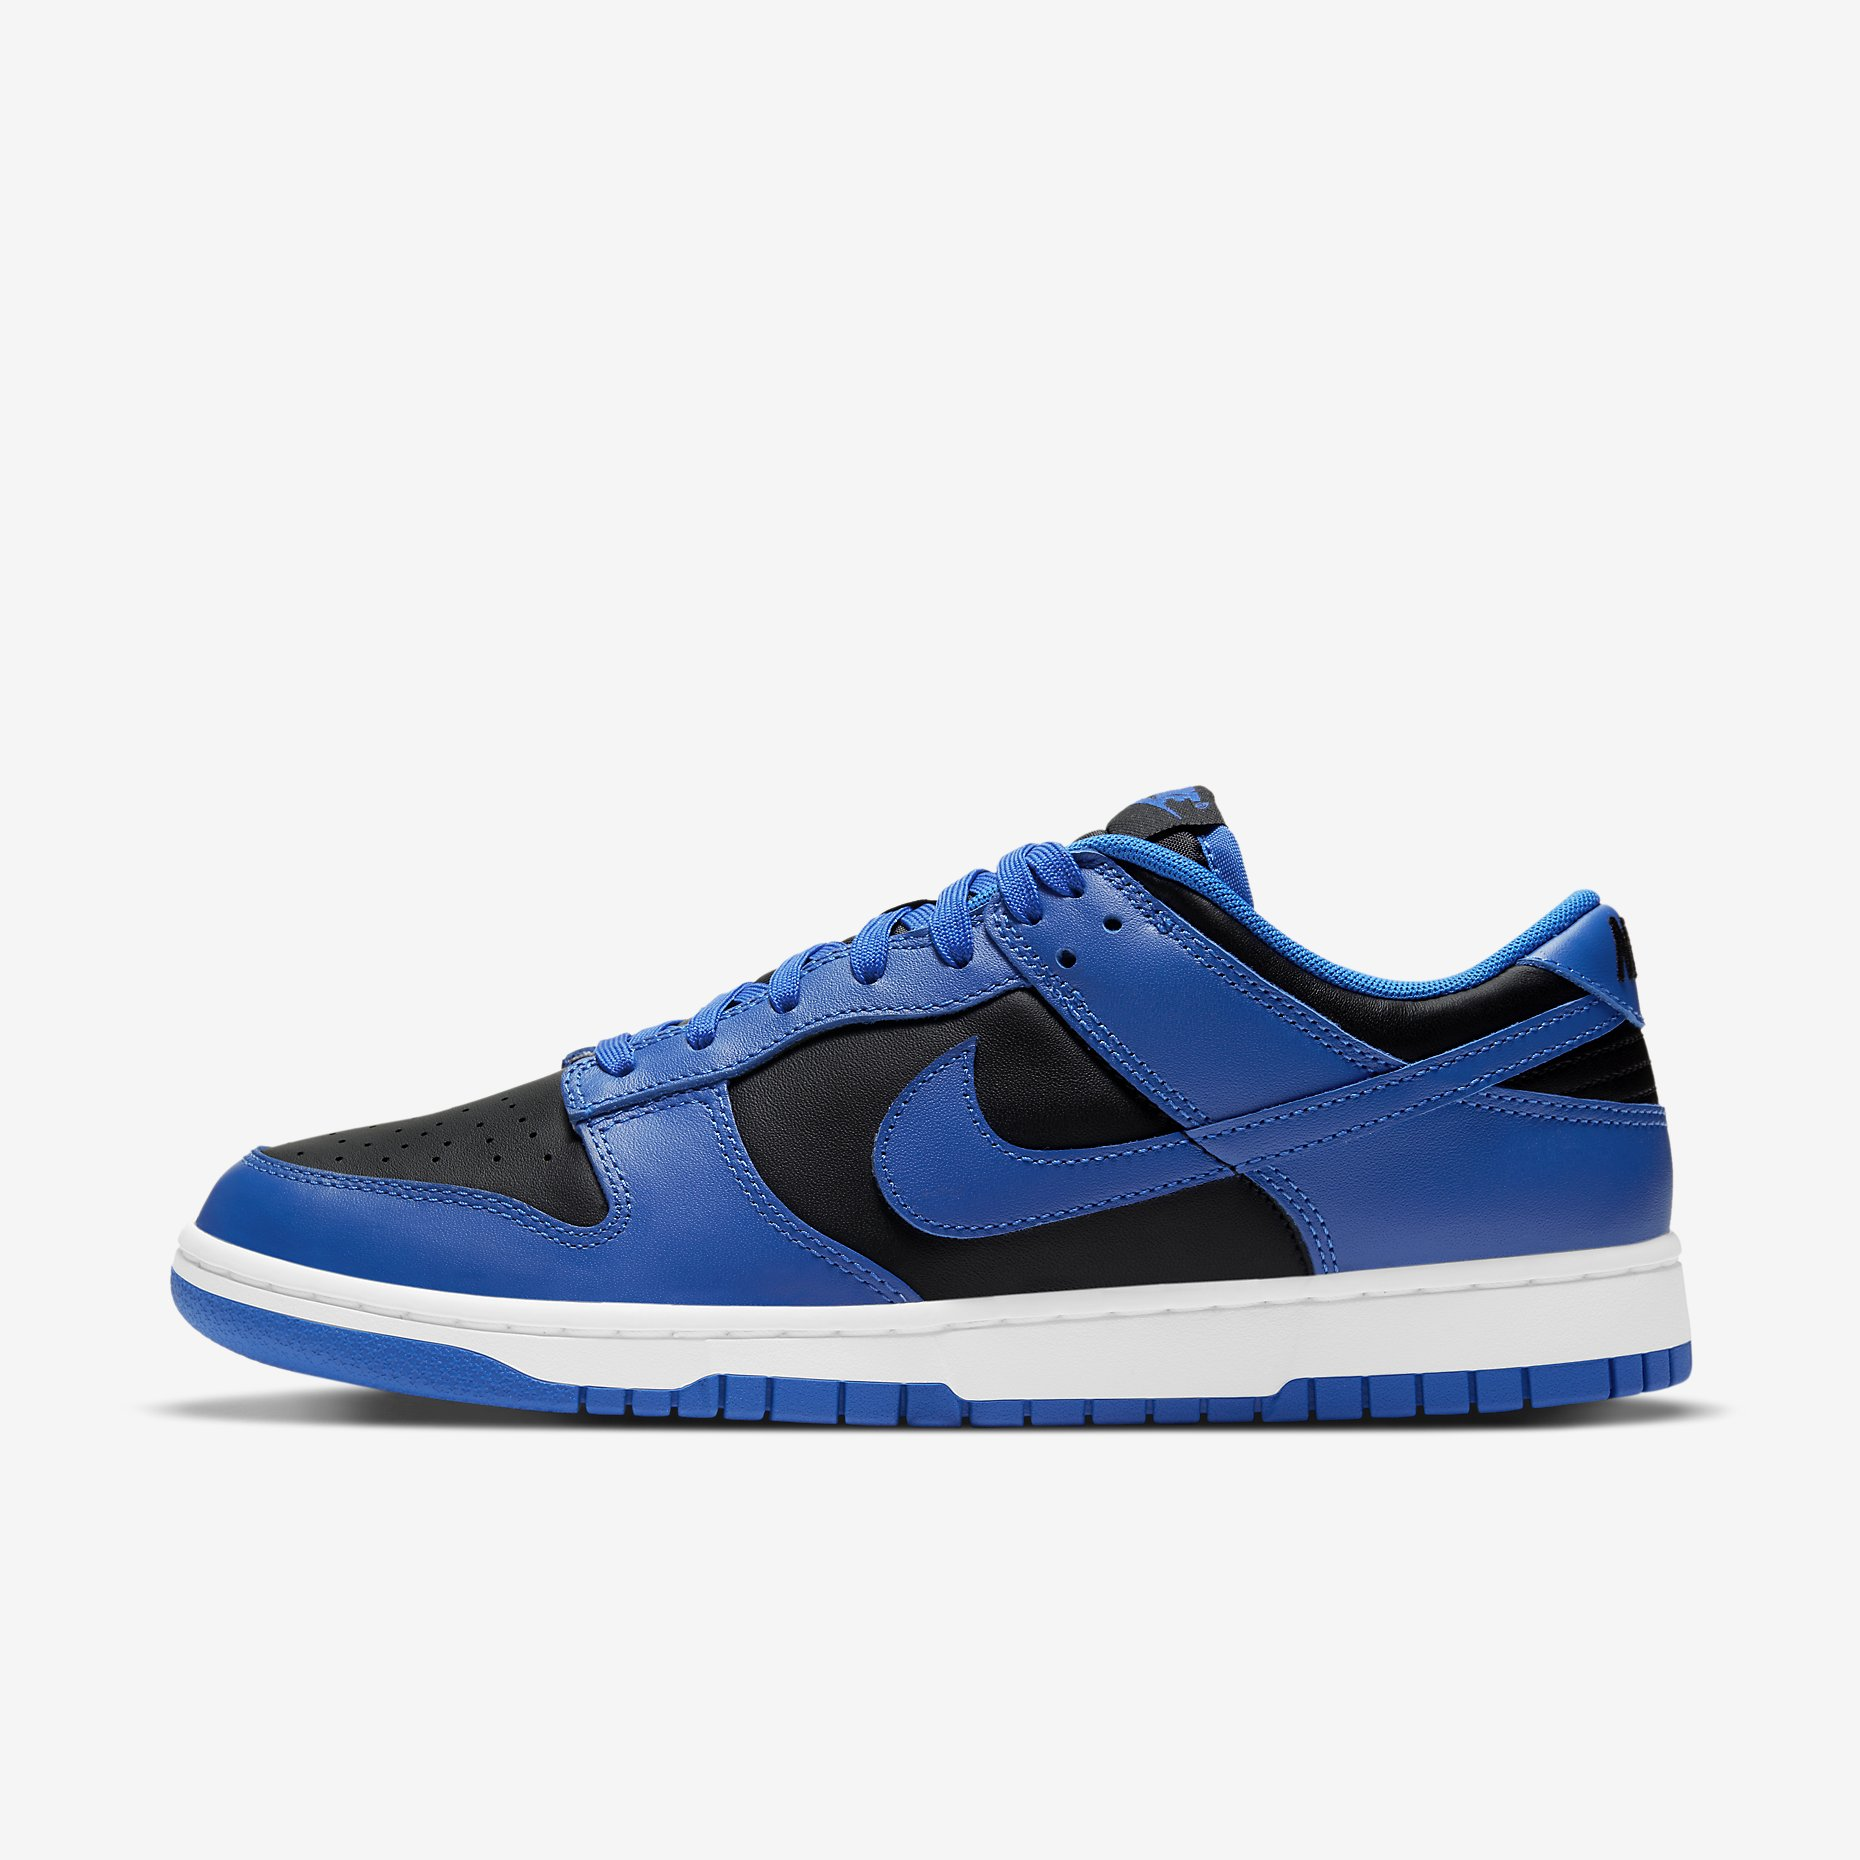 Nike Dunk Low Retro 'Black Hyper Cobalt' 2021}